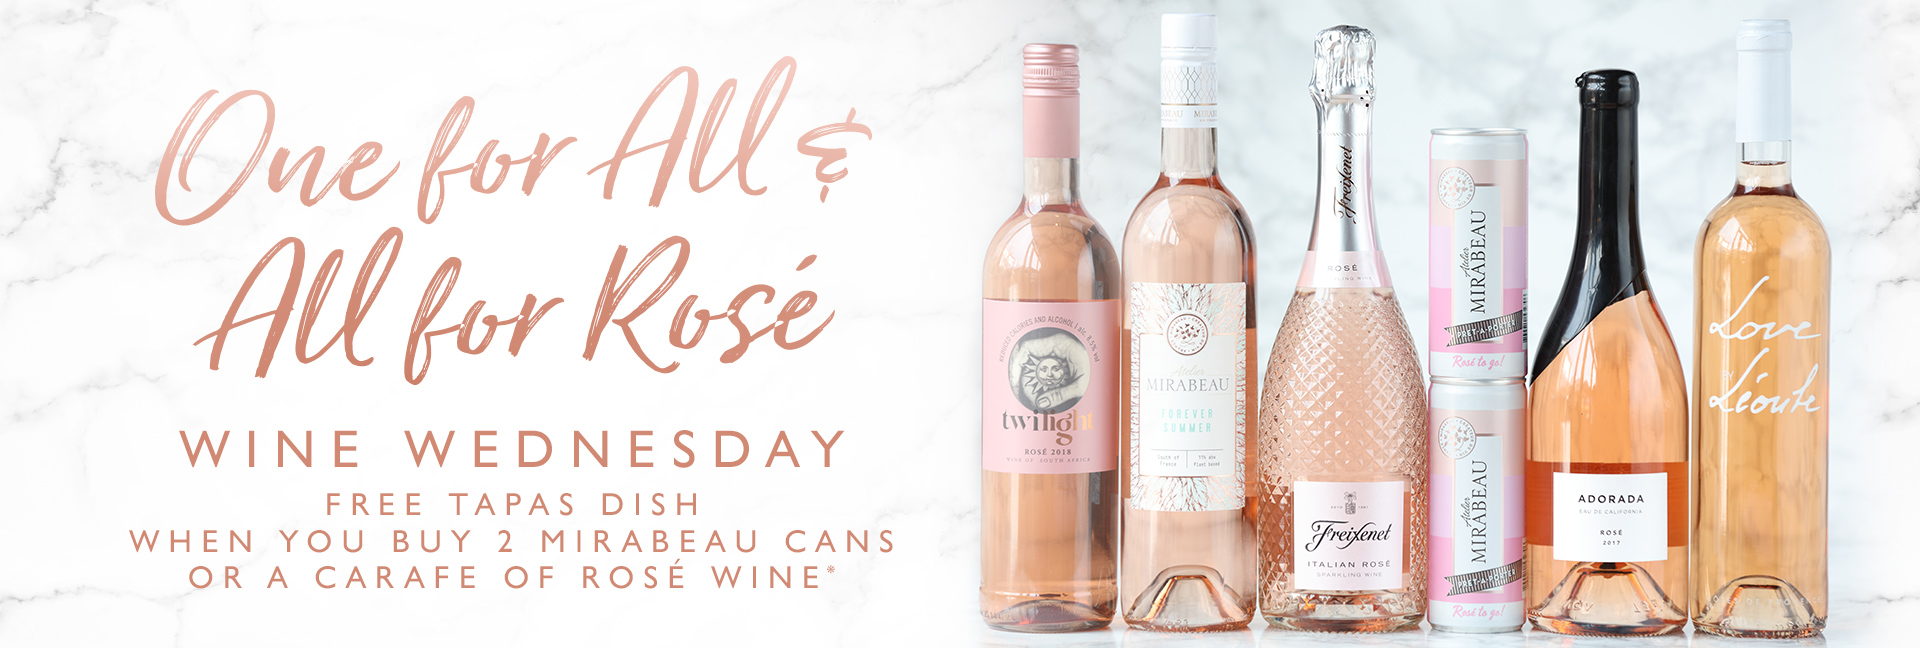 Wine Wednesday at All Bar One Stratford Upon Avon